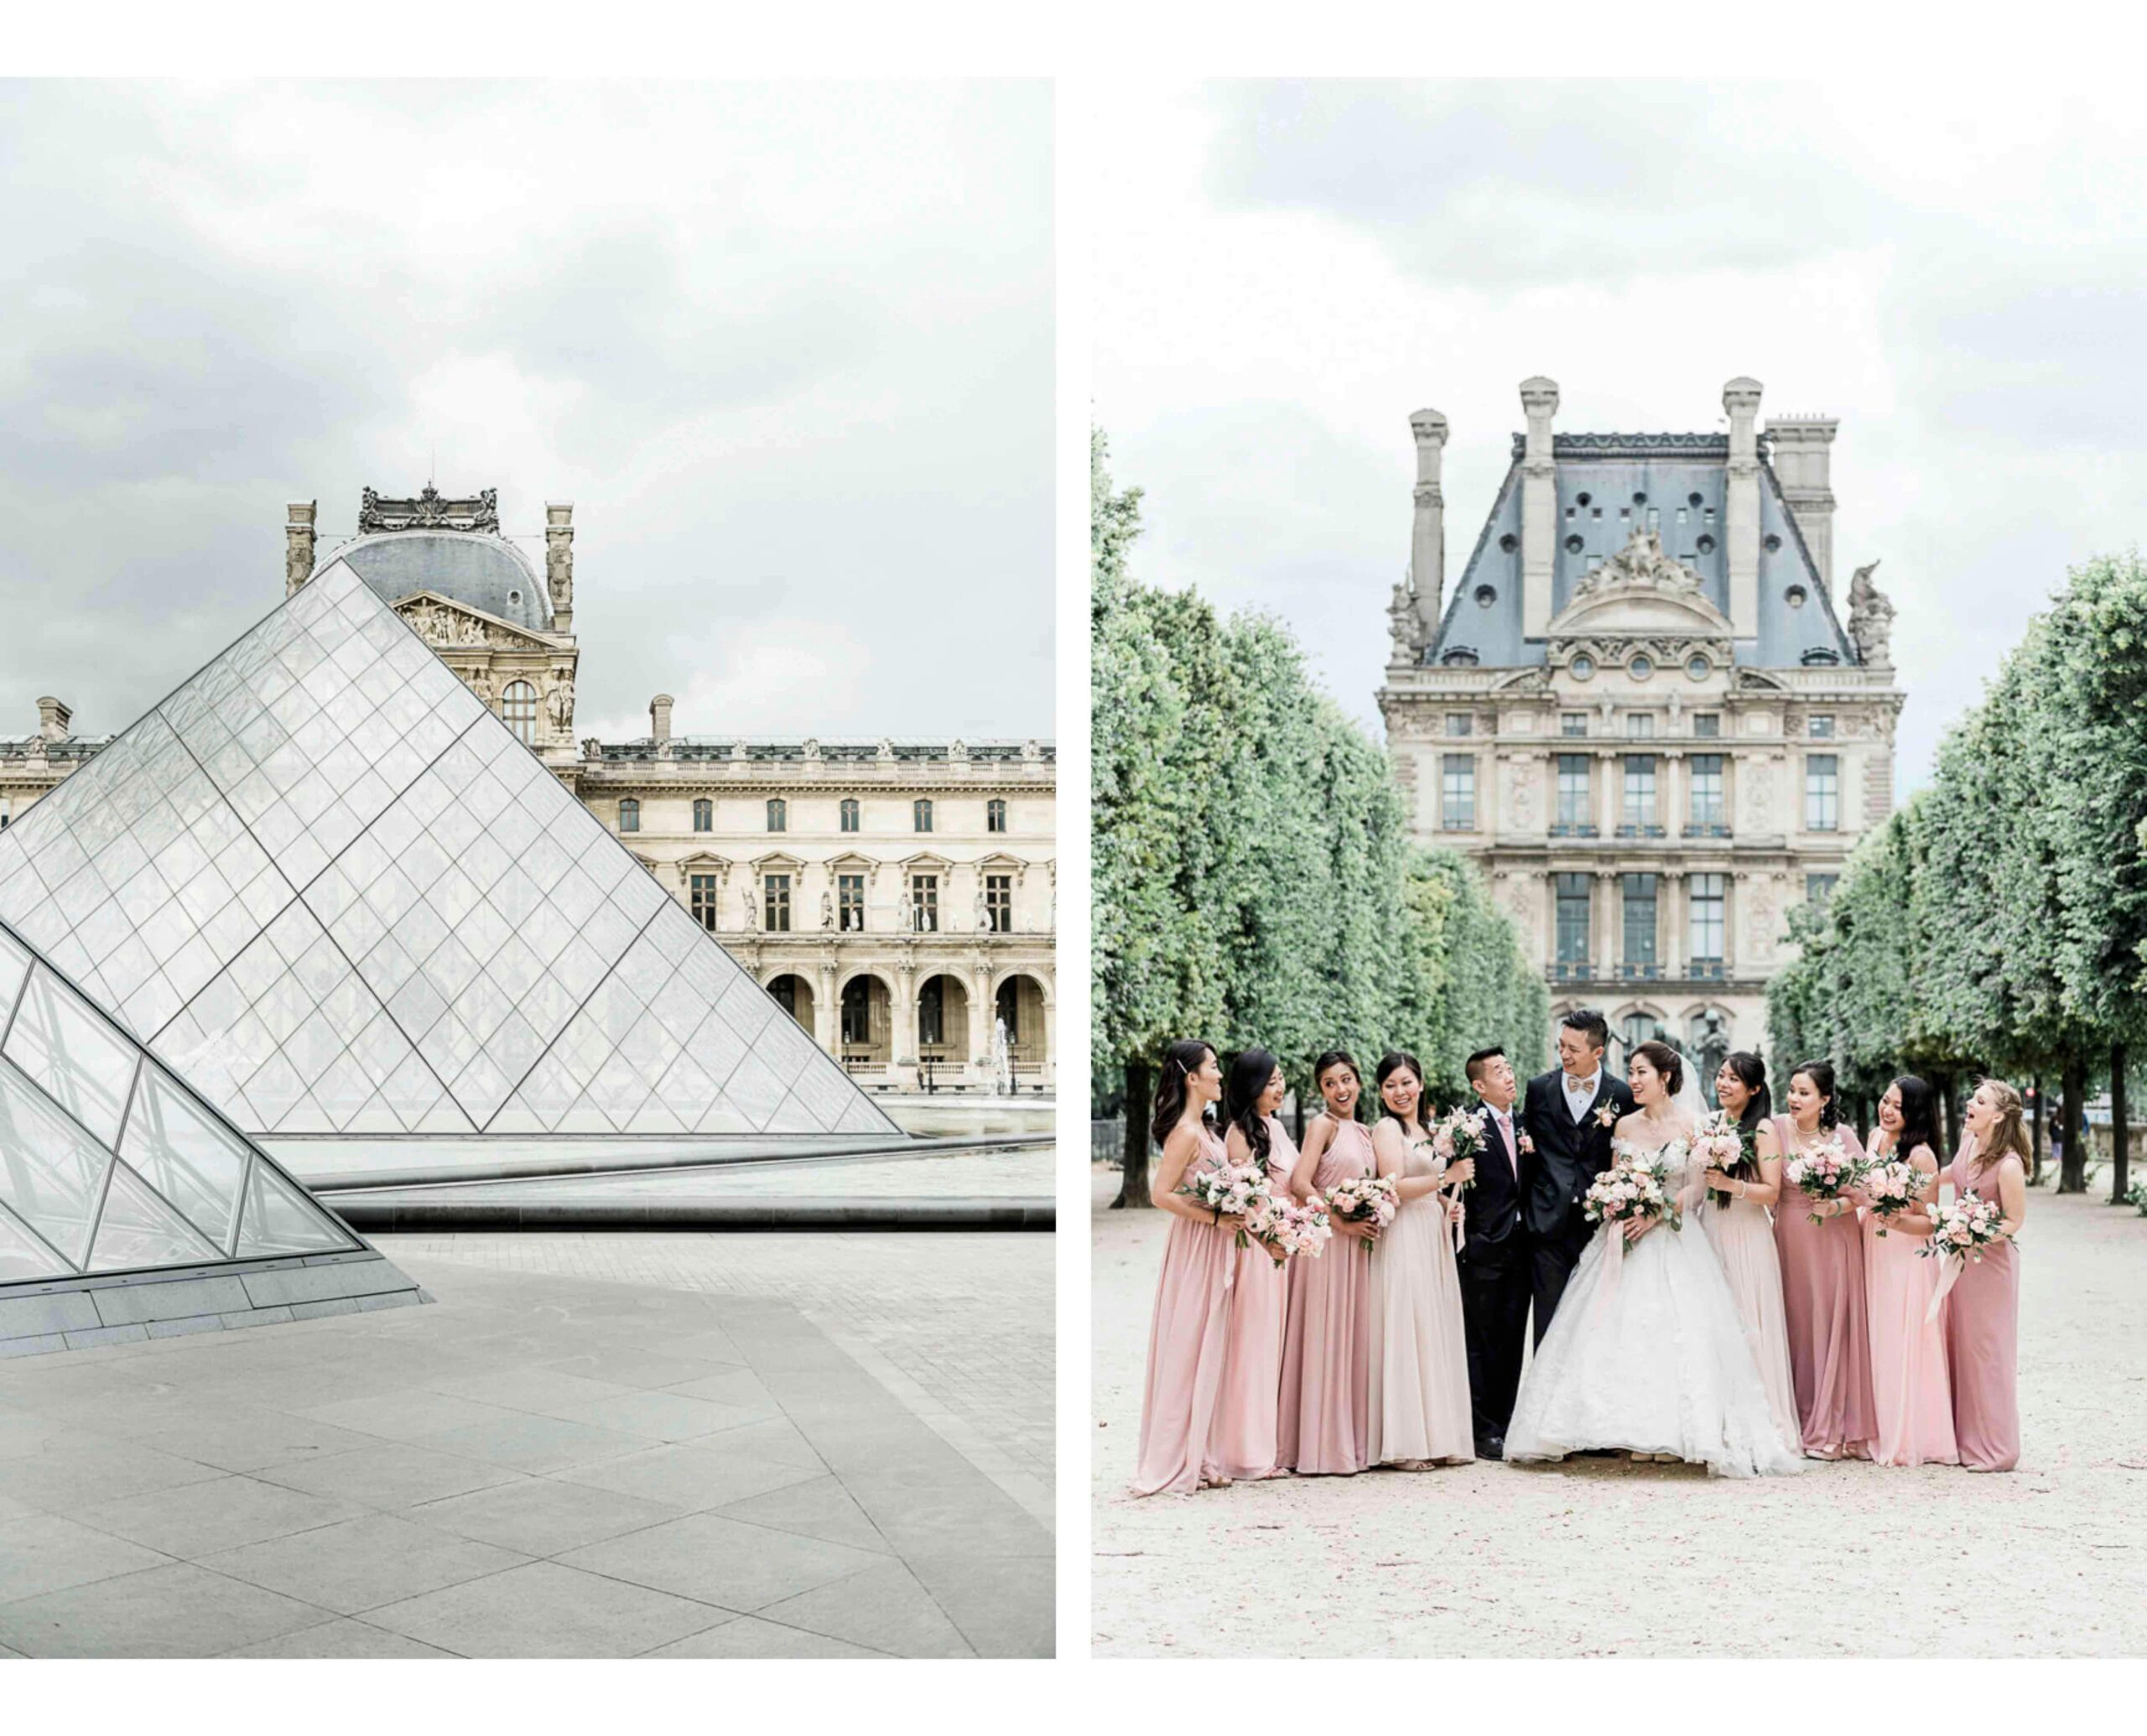 Wedding photography at Louvre Paris and Tuileries Gardens